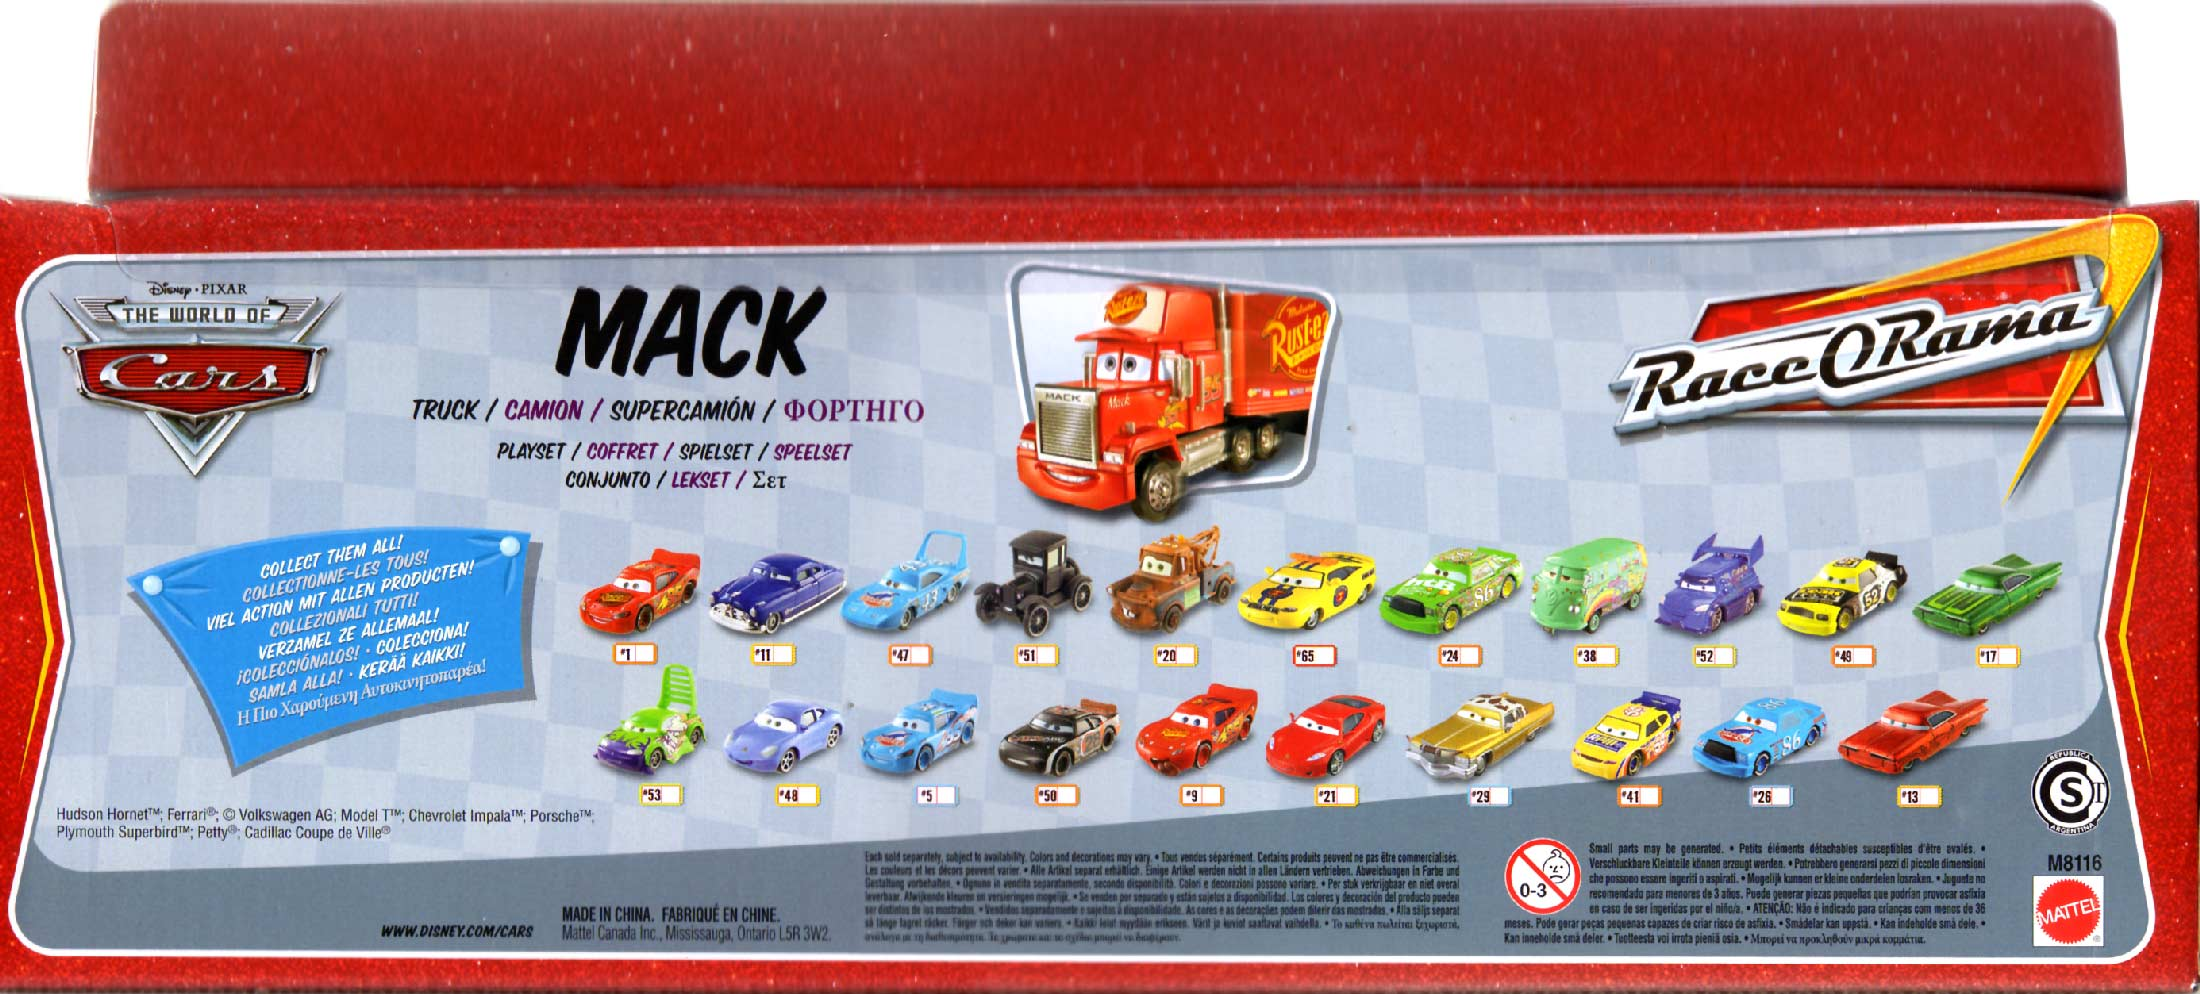 Mack - Cars - Mattel (Packaging dos)